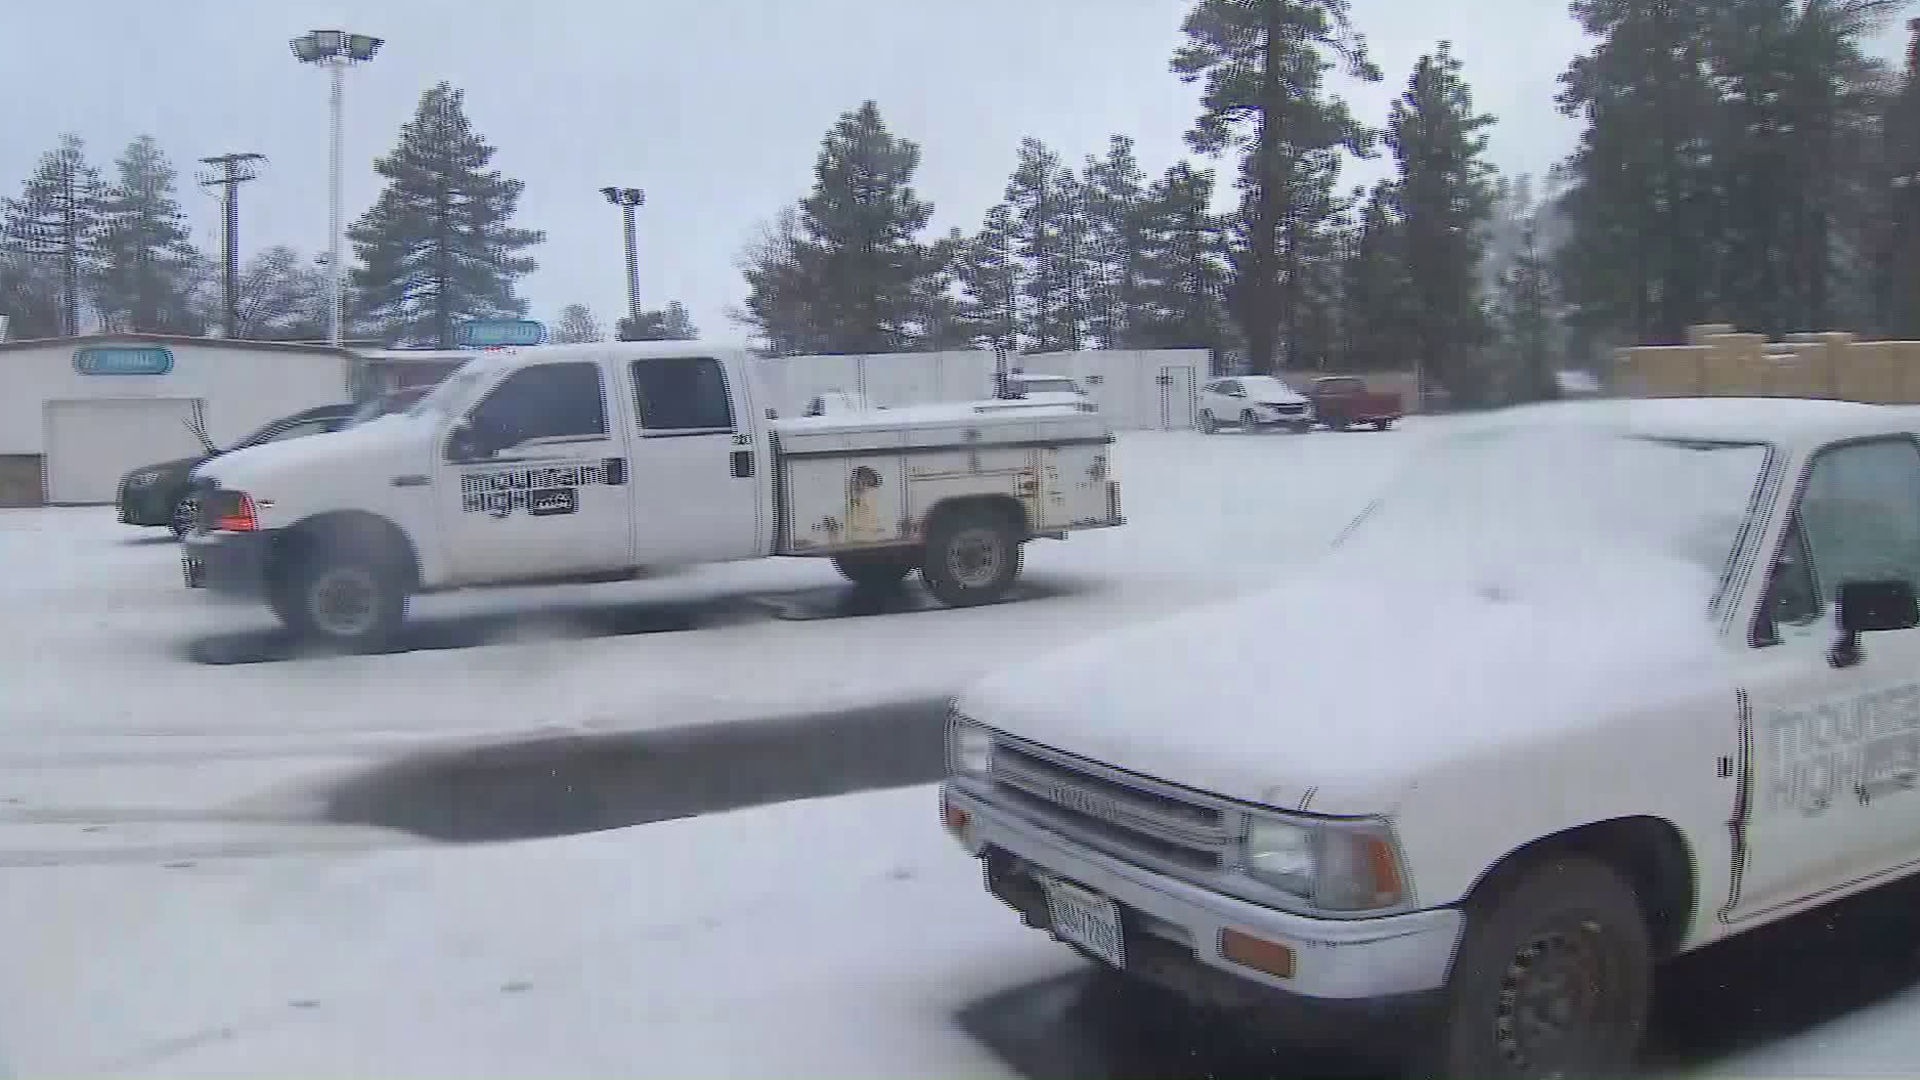 Snow covers vehicles in Mountain High Resort in Wrightwood on Nov. 20, 2019. (Credit: KTLA)